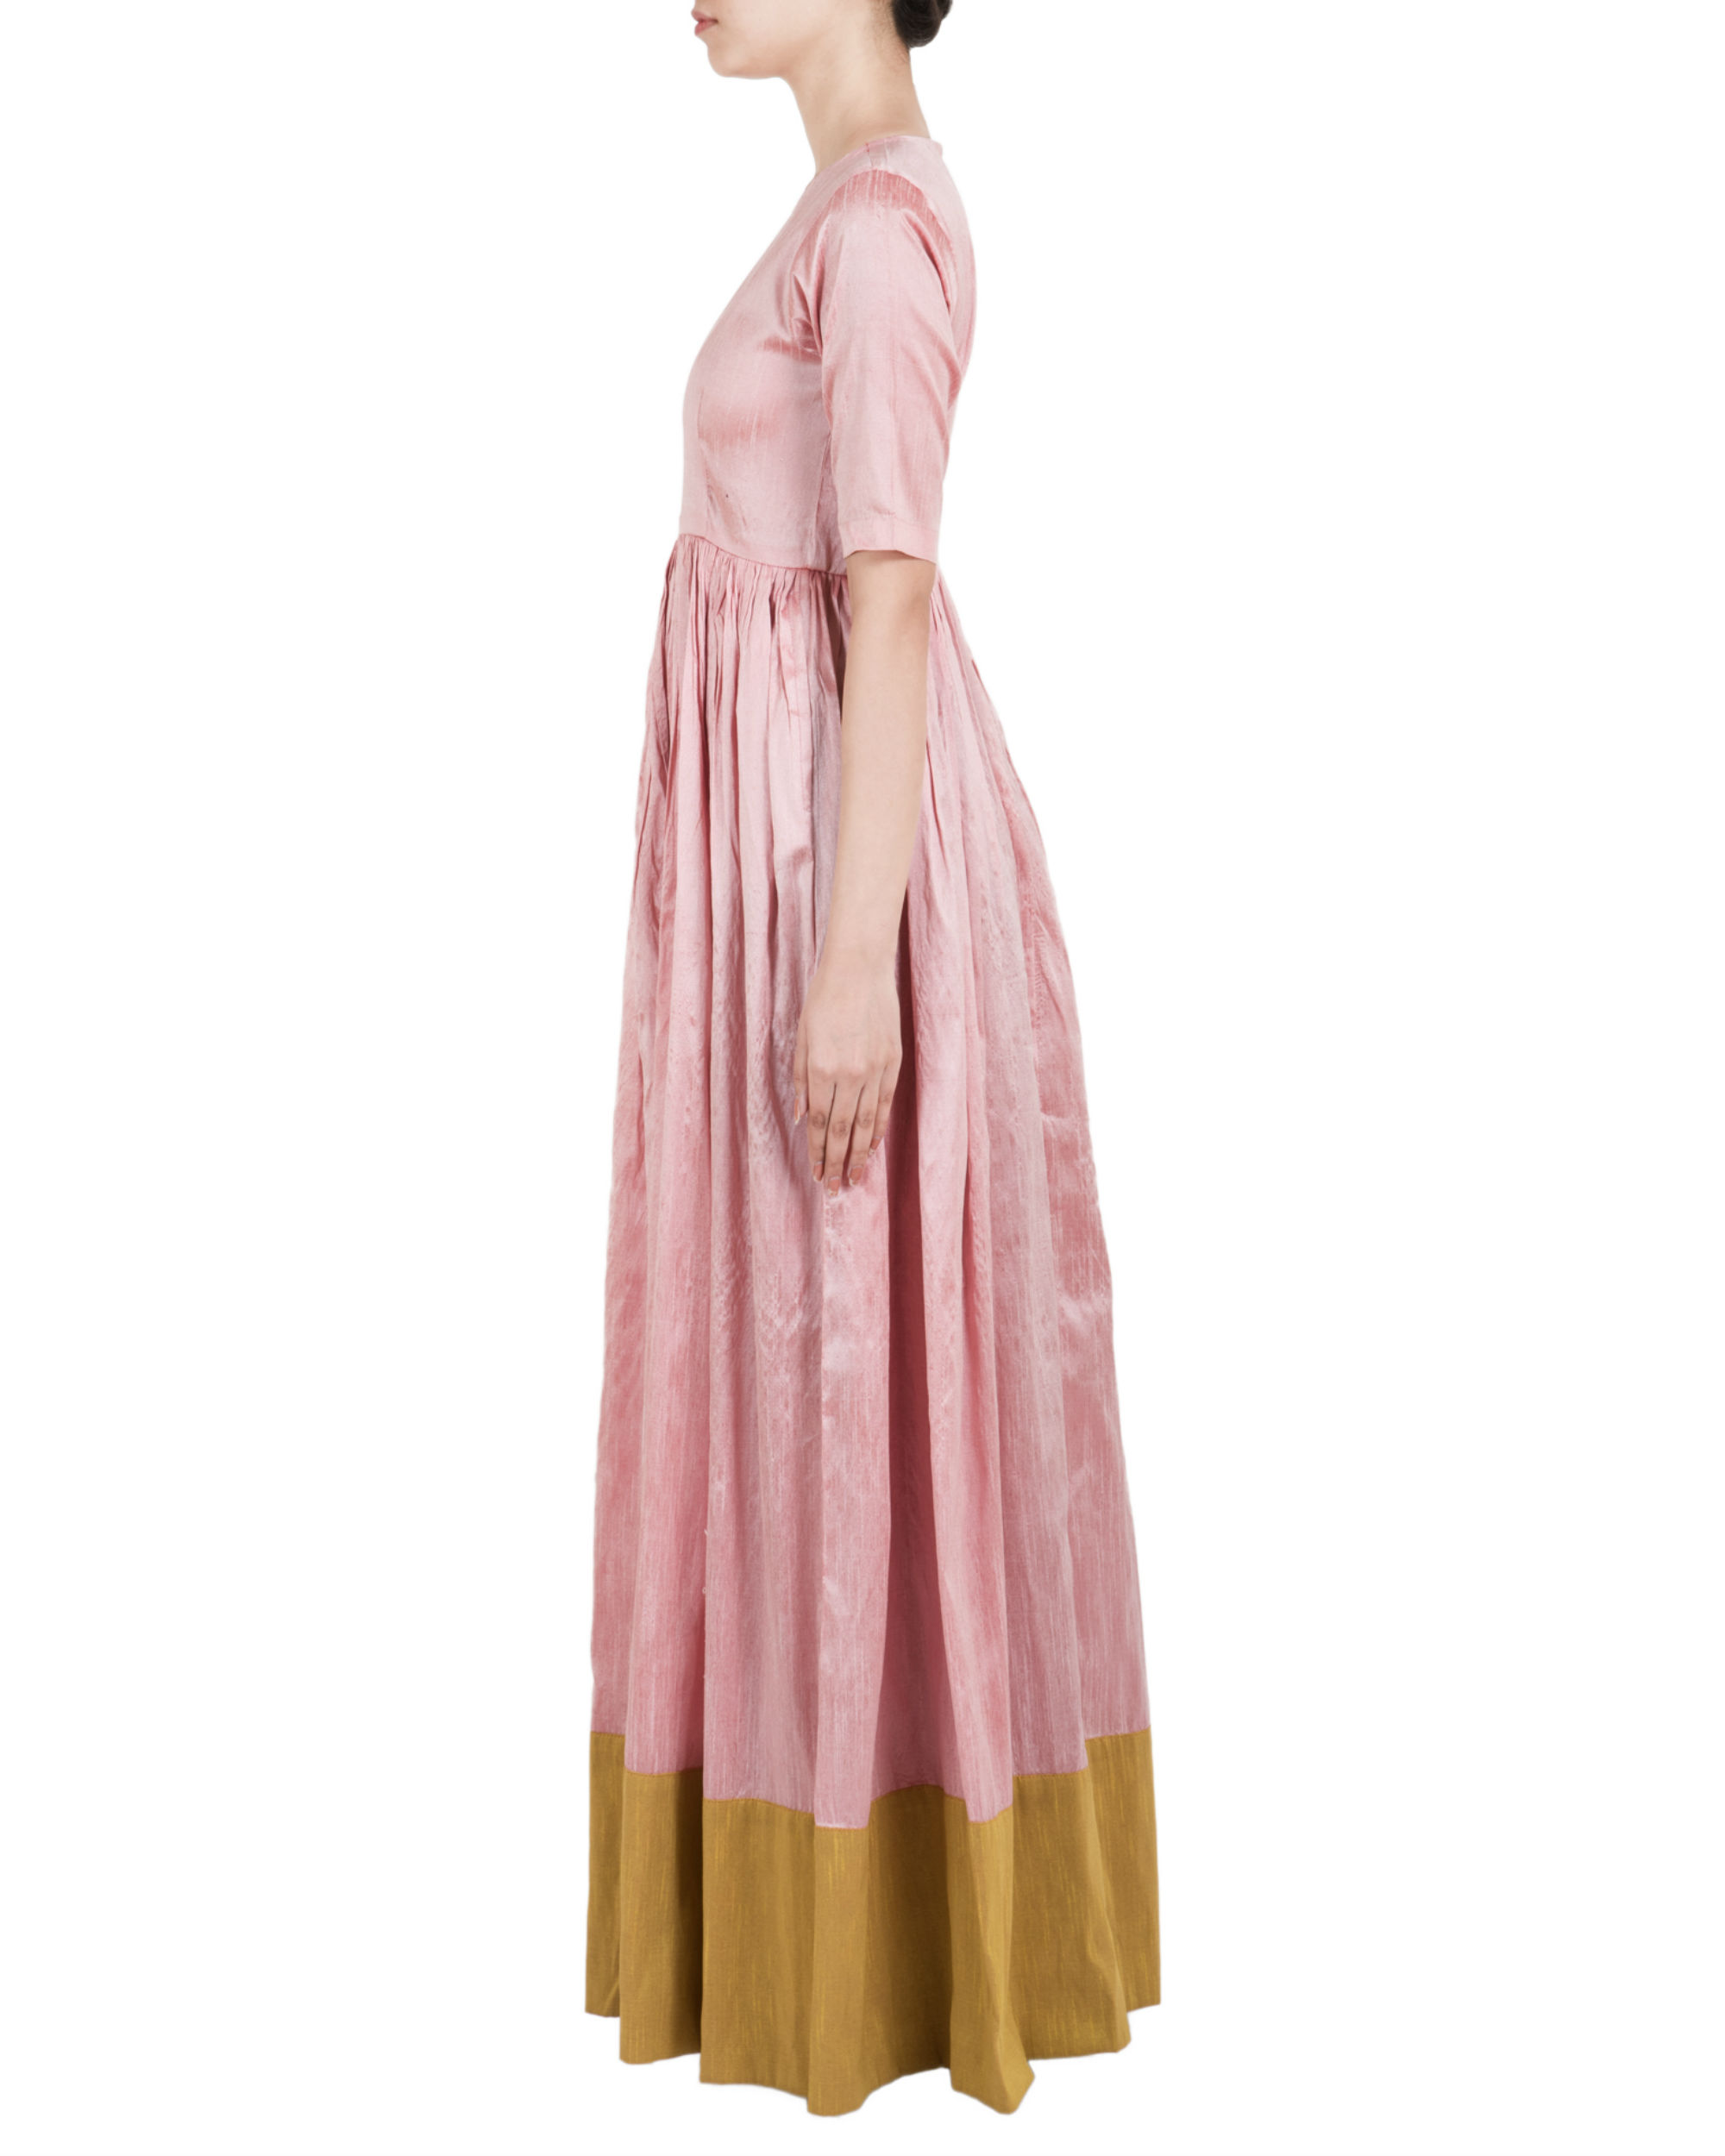 Rose Fashion Store Home: Rose And Quartz Green Straight Dress By TrueBrowns